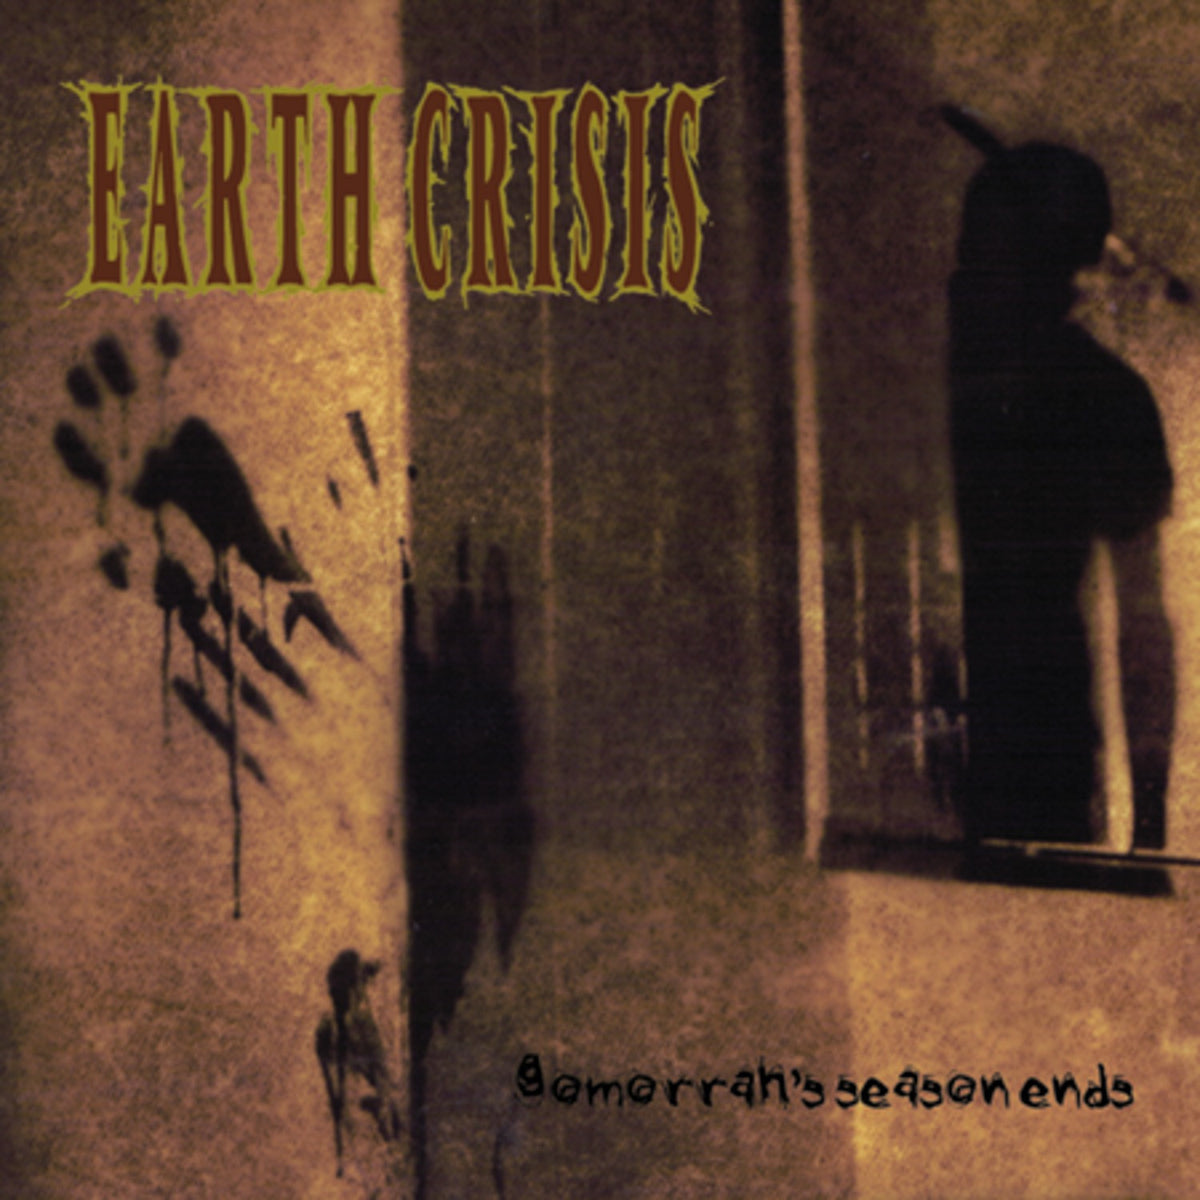 Earth Crisis: Gomorrah's Season Ends Vinyl LP (Record Store Day 2014)